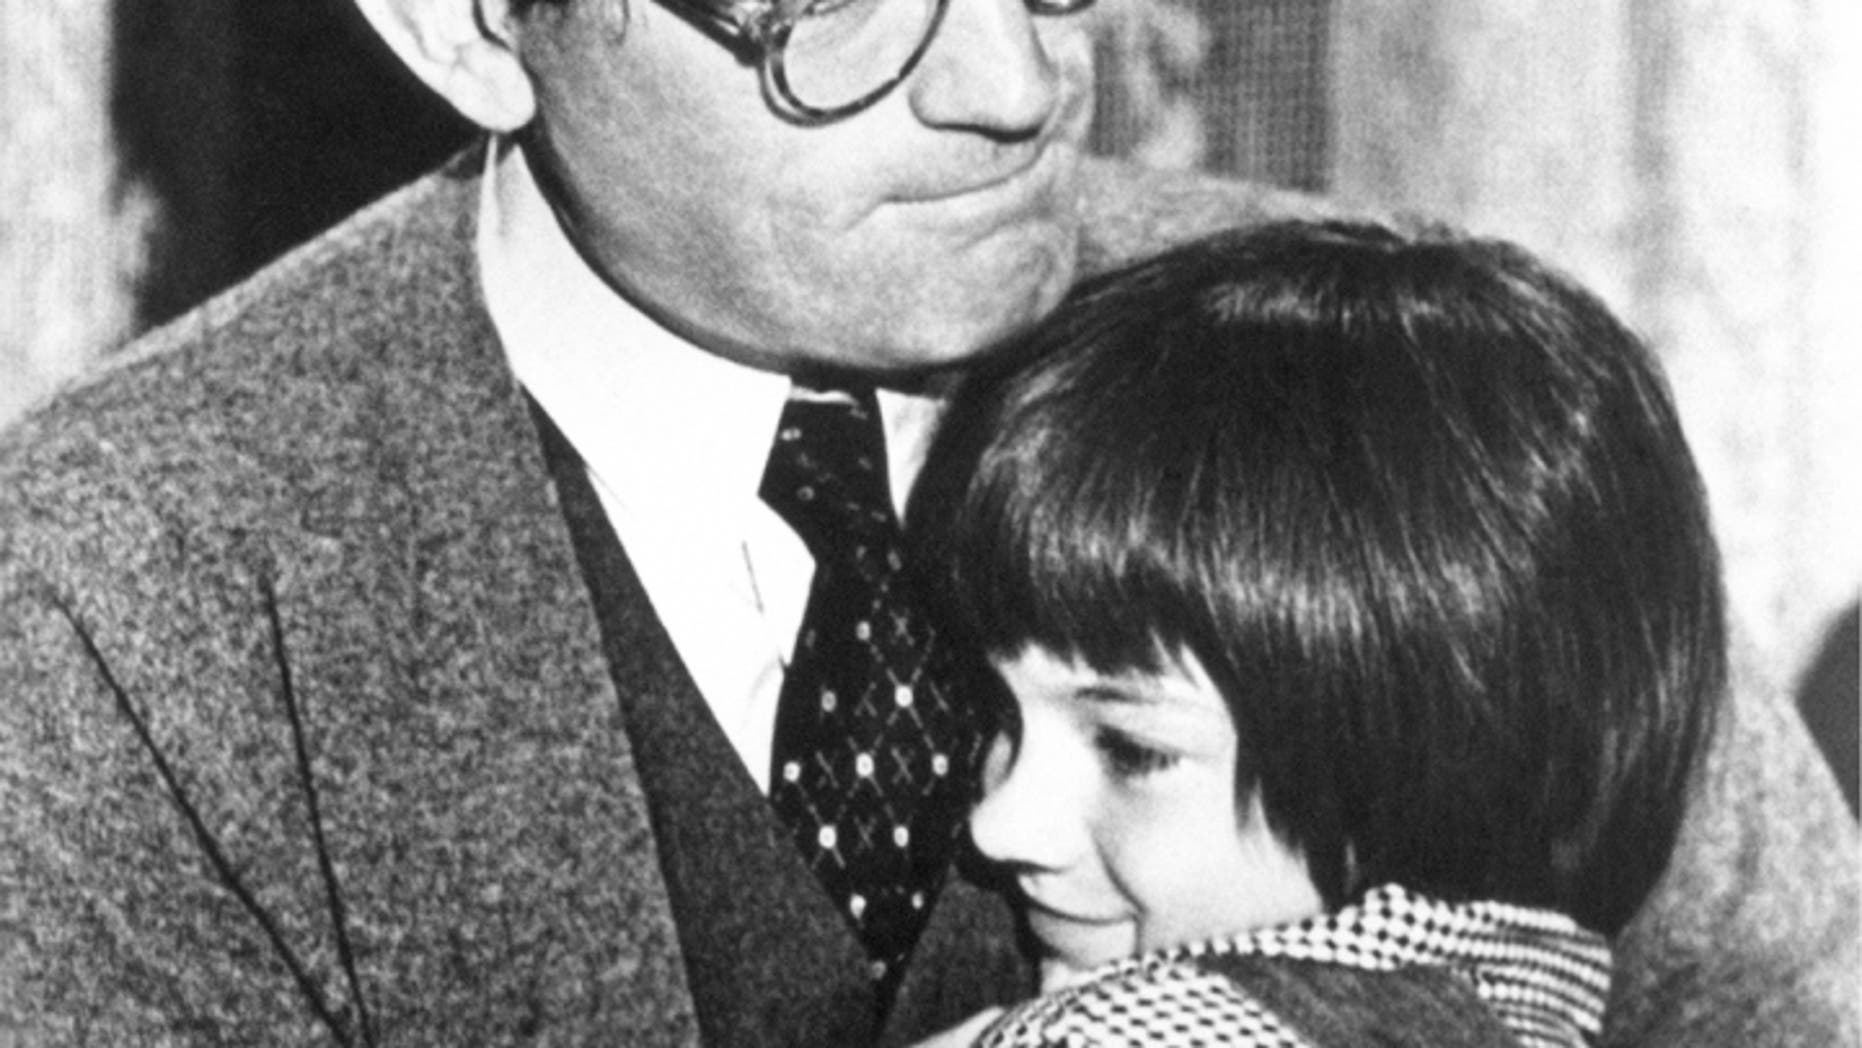 """Gregory Peck embraces Mary Badham, 9, who plays his daughter in the 1963 movie """"To Kill a Mockingbird."""""""